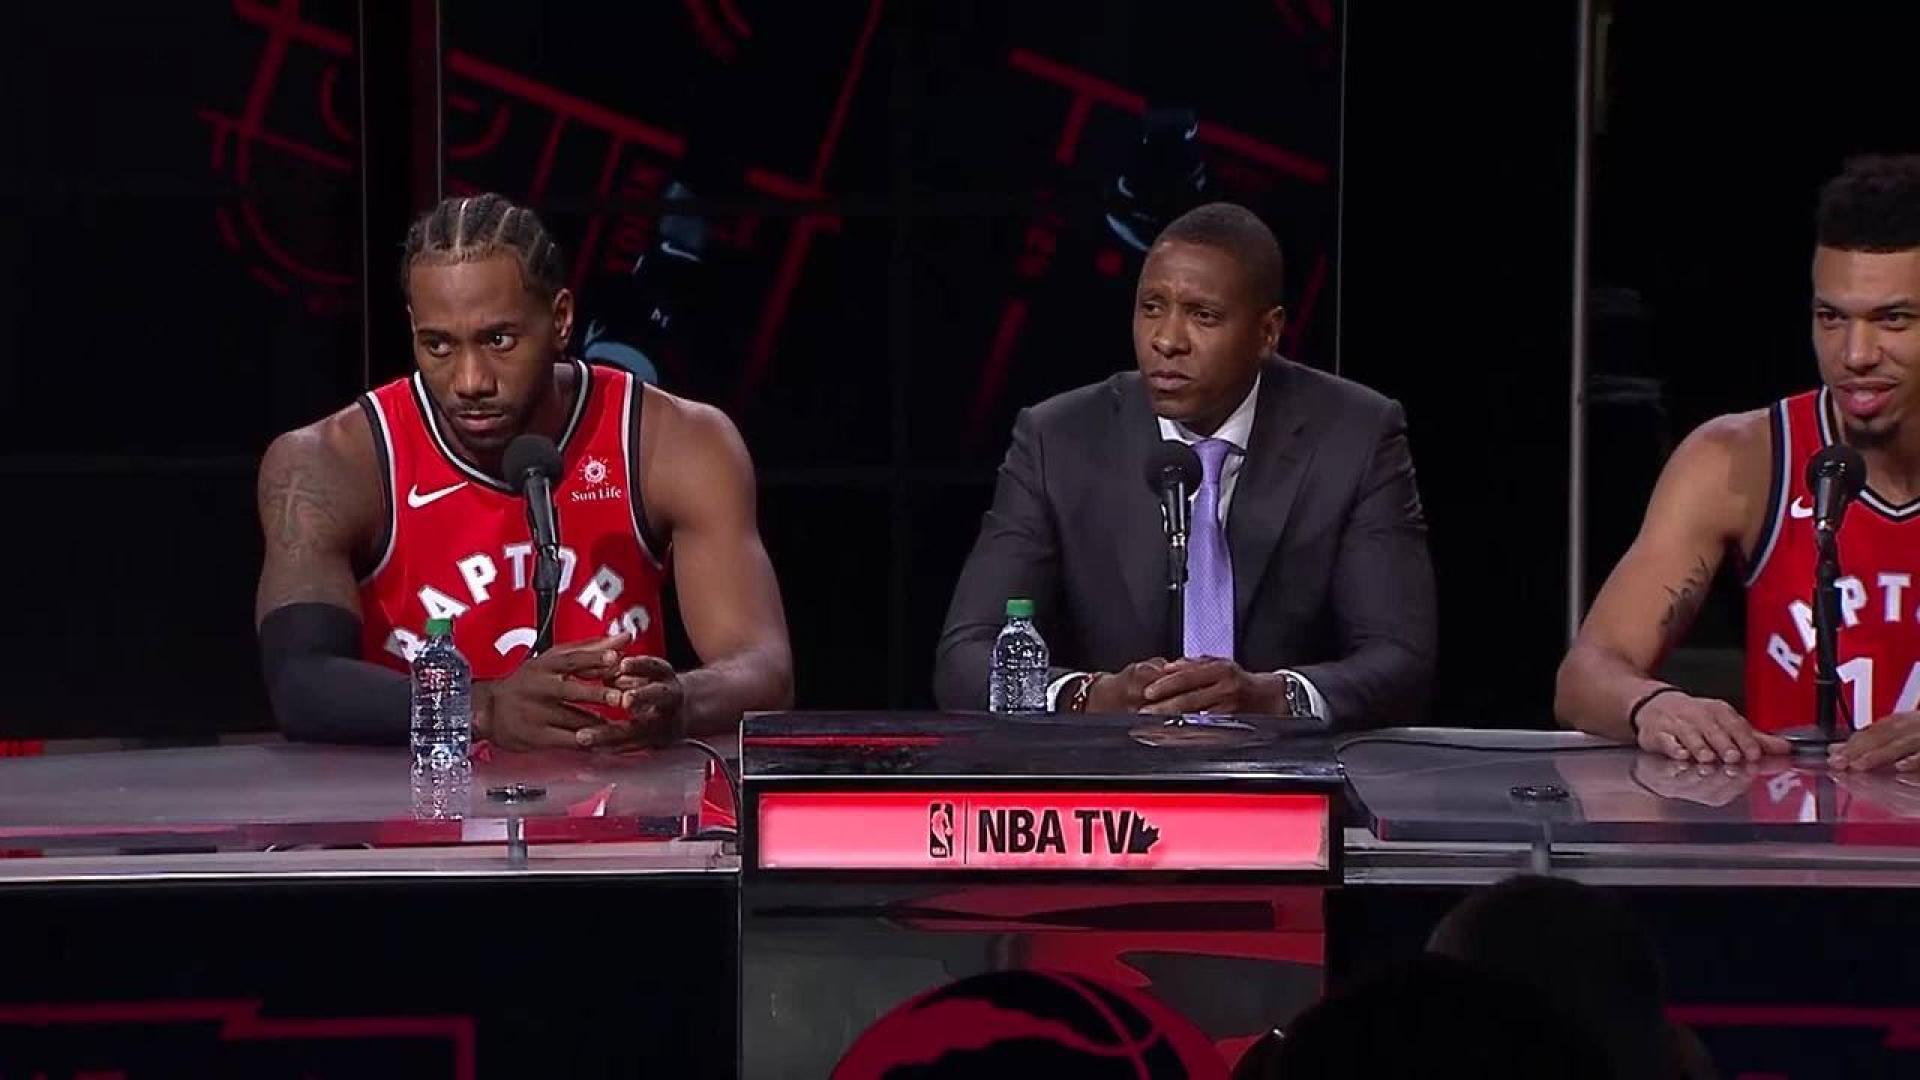 Kawhi Leonard focused on this season with Toronto Raptors